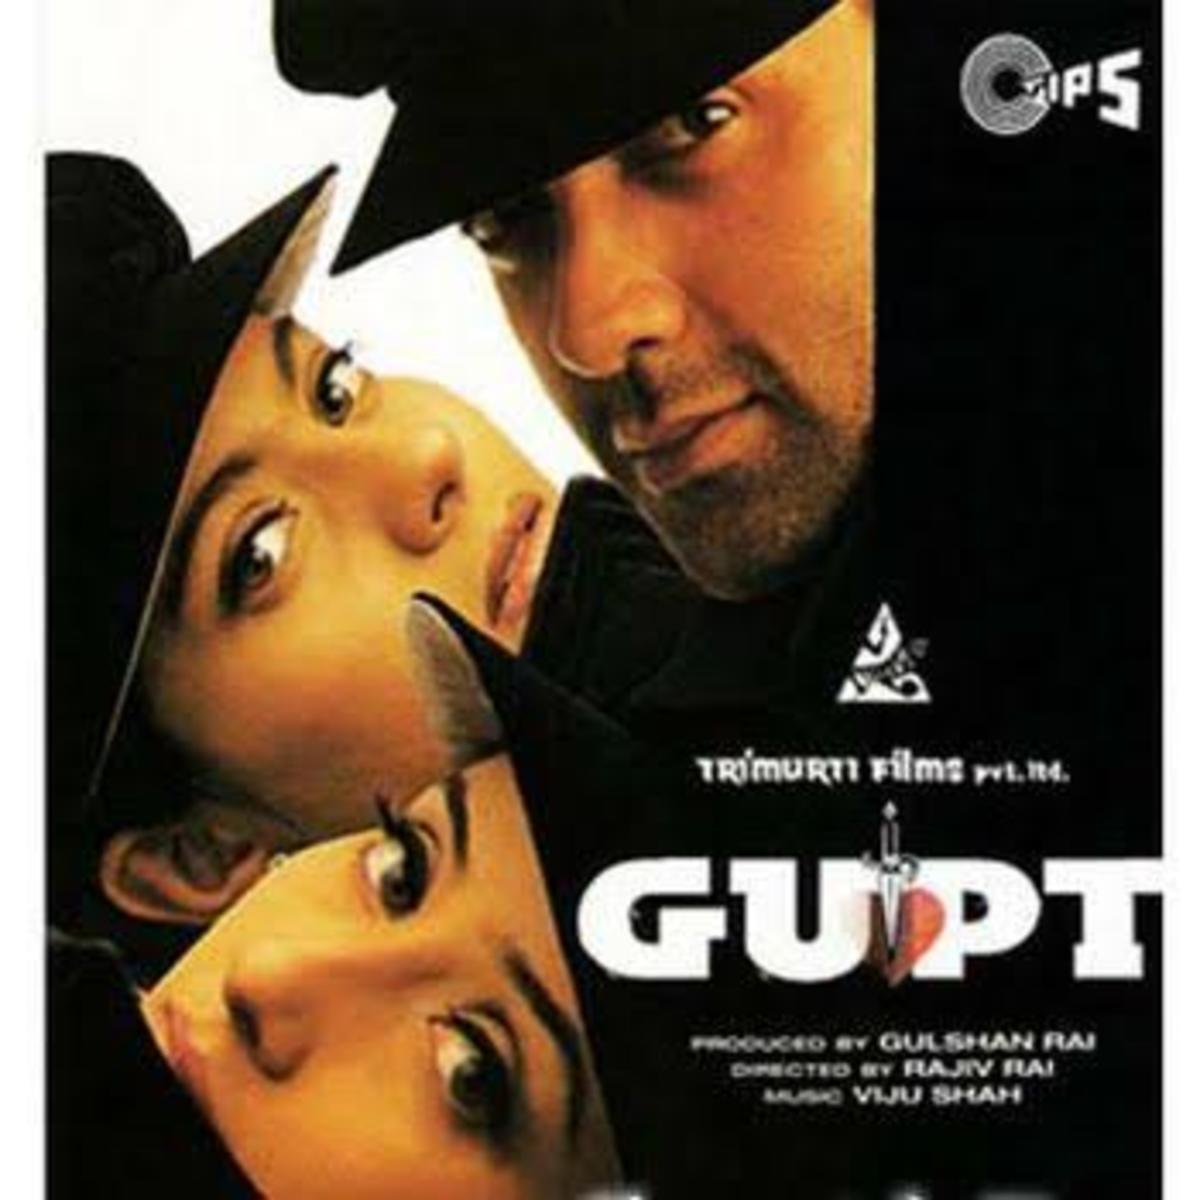 Gupt: The Hidden Truth theatrical release poster